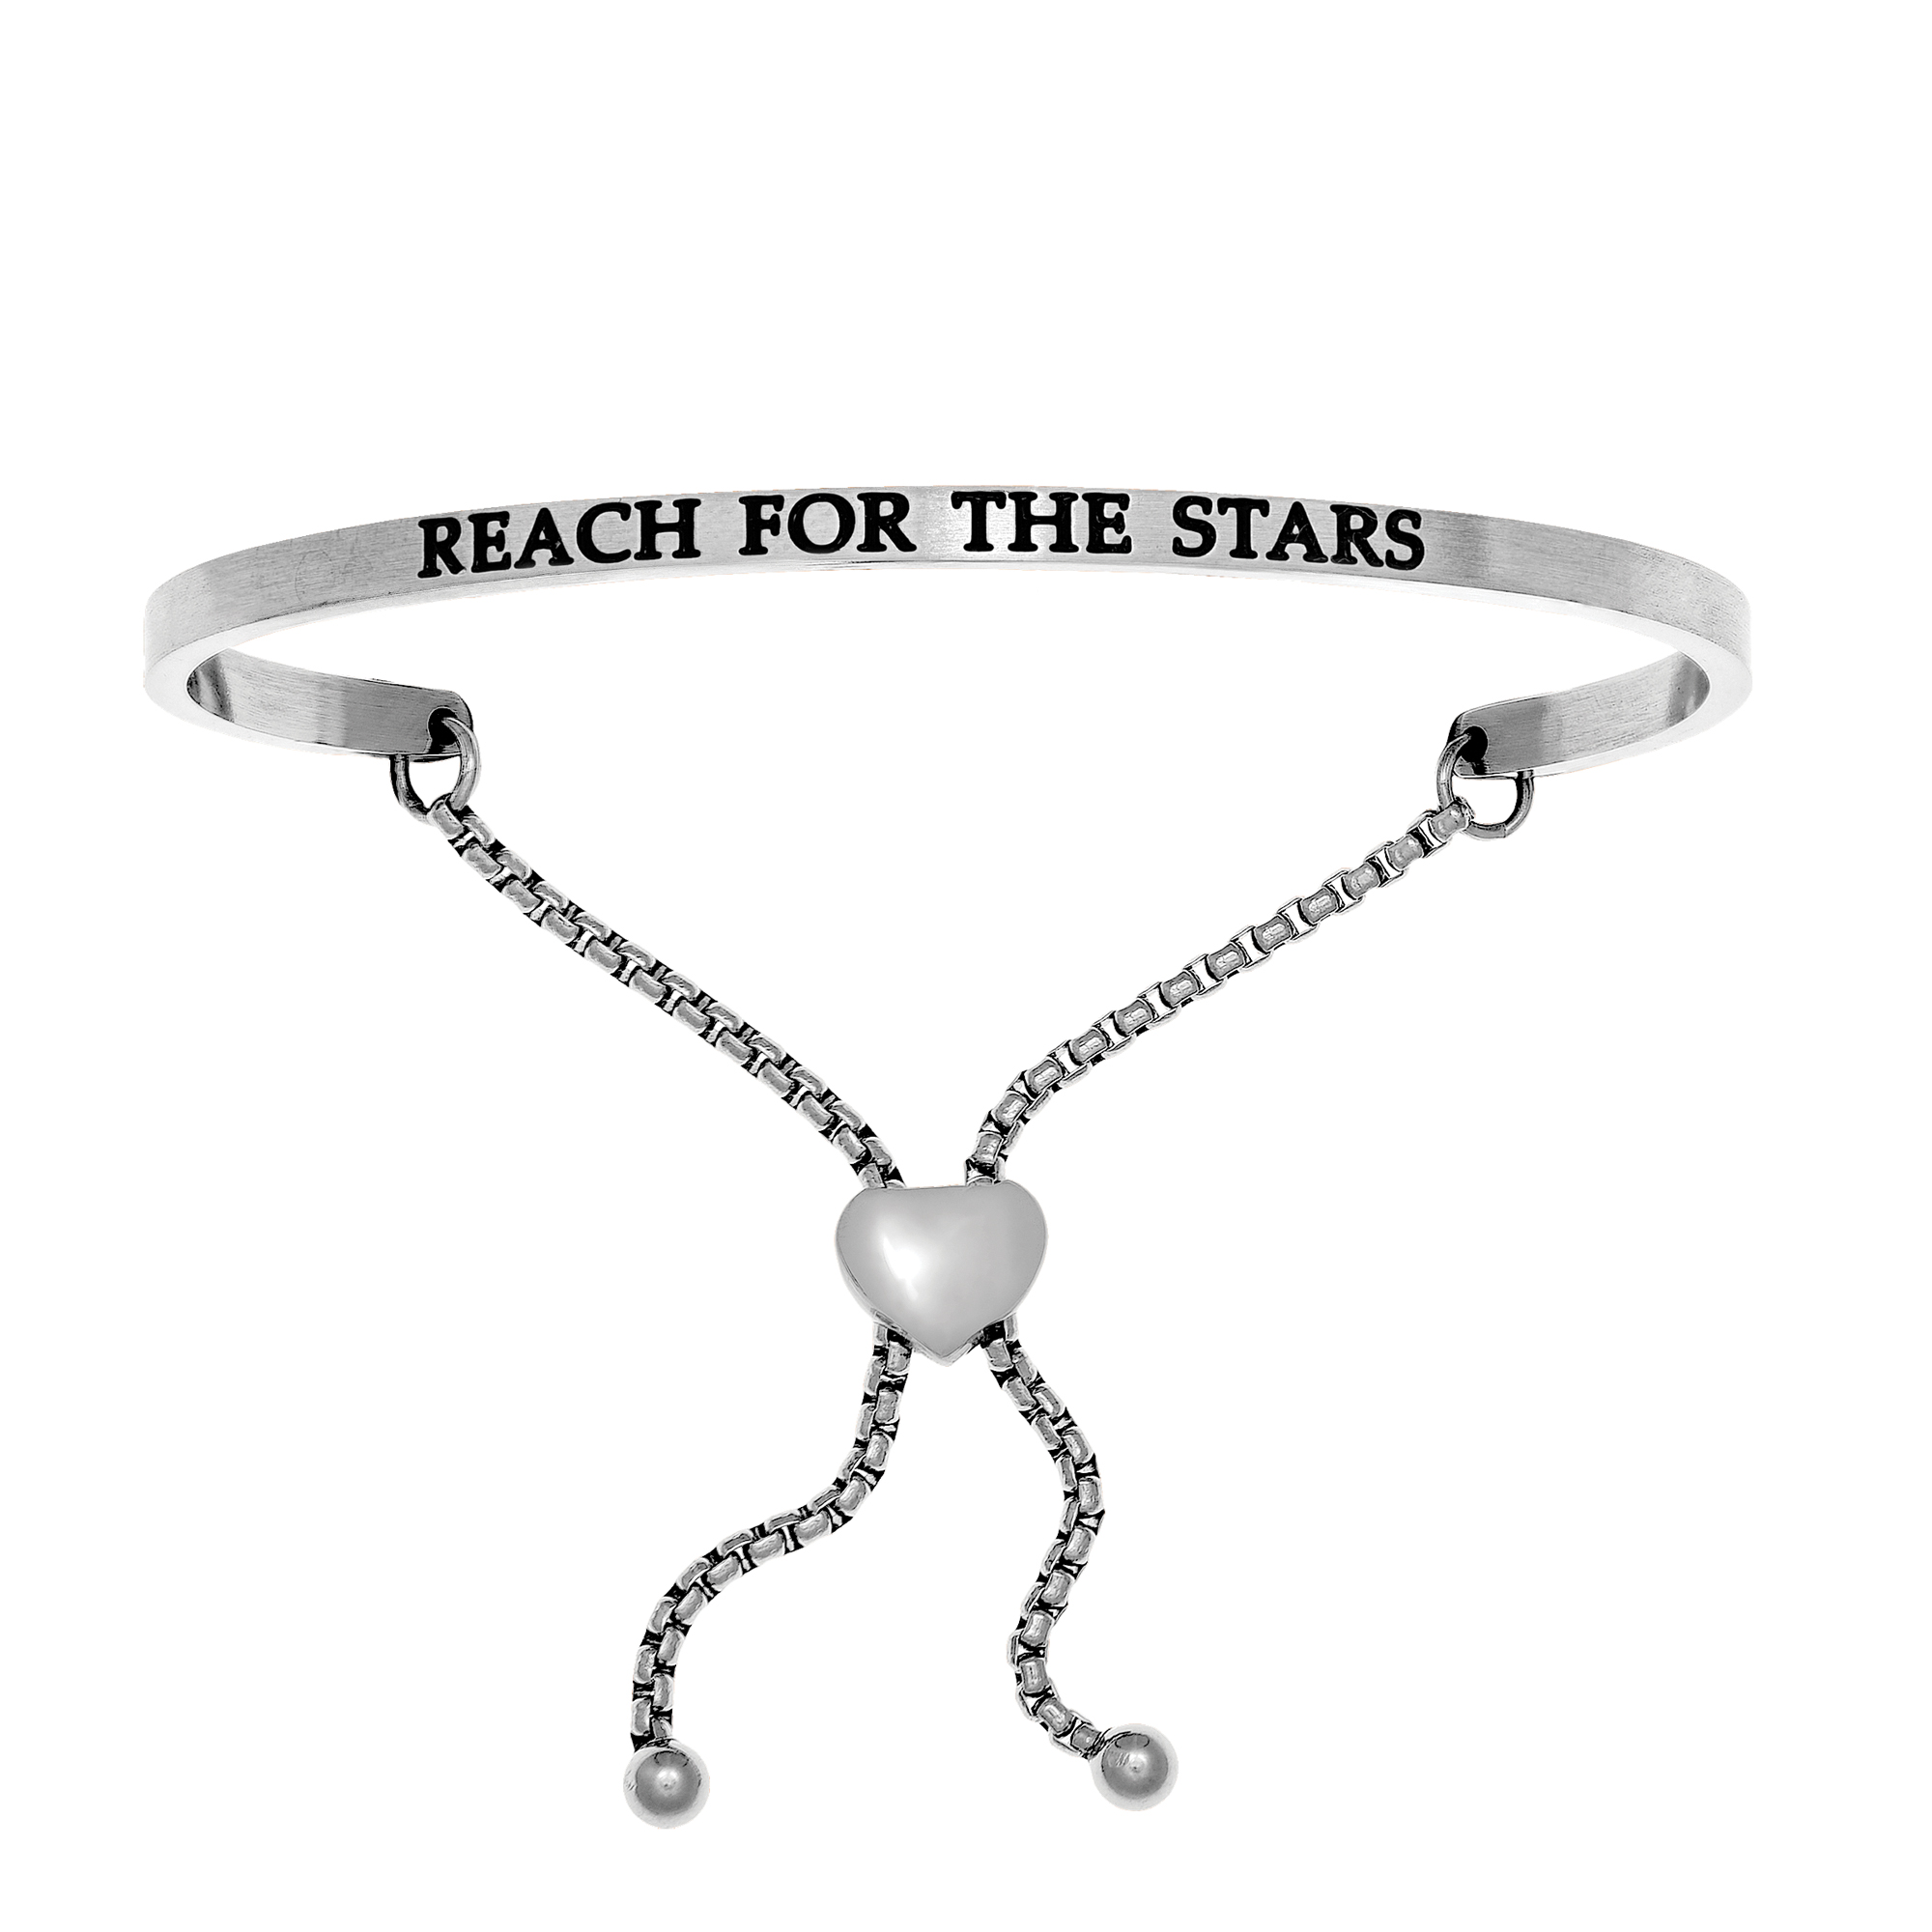 Intuitions Stainless Steel REACH FOR THE STARS Diamond Accent Adjustable Bracelet Each of these bracelets carries a personal message of inspiration, spirituality or just plain fun. Meant to be worn alone or stacked together for a smart, contemporary look, they're a great self-purchase or as a gift for family or friends. Intuitions are made of stainless steel and come in two styles standard cuff or friendship and fit practically any wrist. Intuitions Jewelry makes the difference in your daily life by designing and creating bracelets and bangles with motivational quotes to inspire you and your loved ones. Giving back $.25 of each bracelet to BABY2BABY